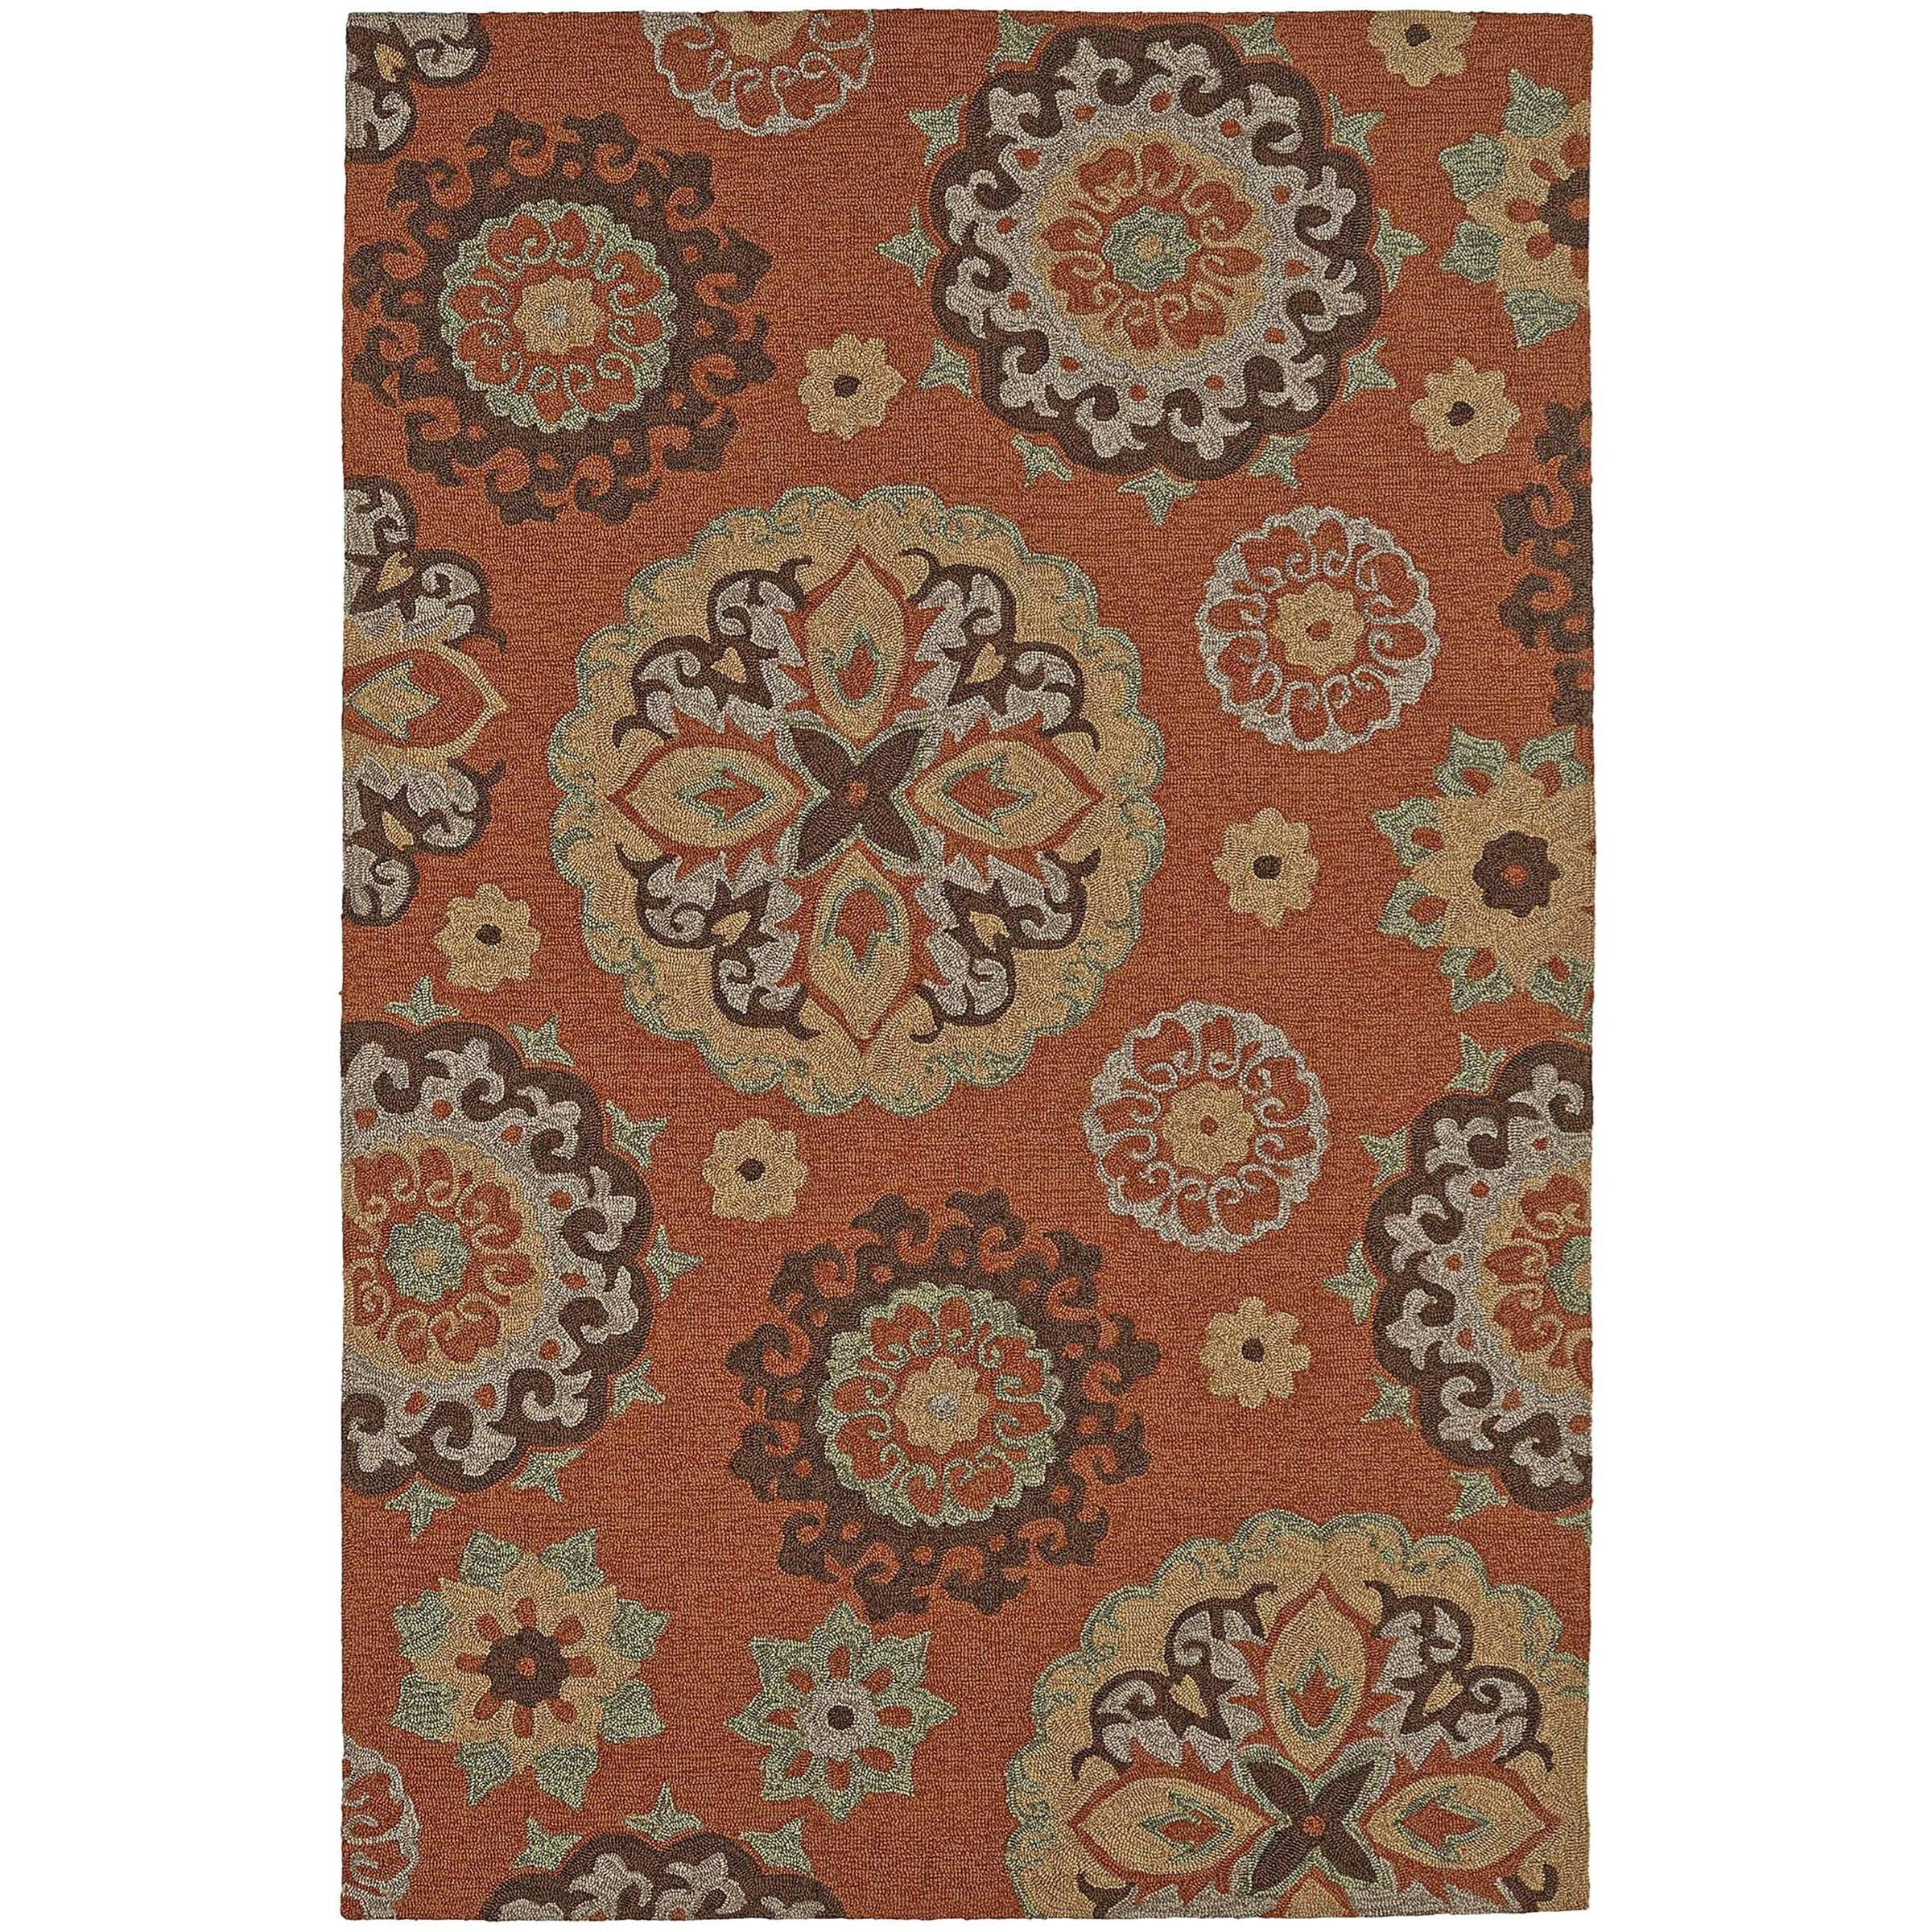 Dalyn Cabana Spice 9'X13' Rug - Item Number: CN3SP9X13